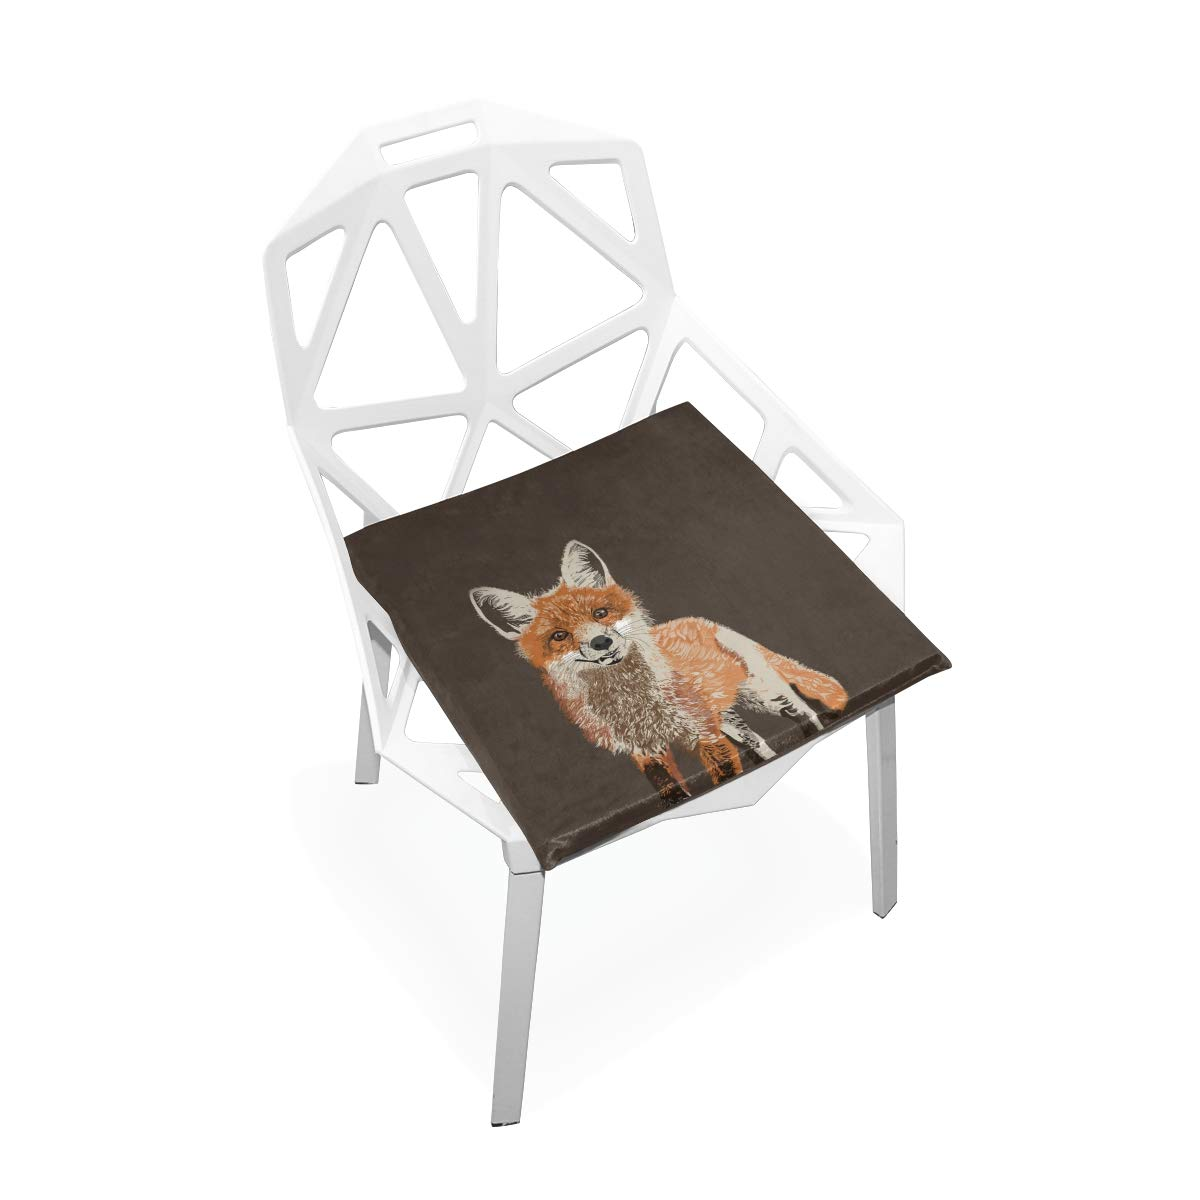 TSWEETHOME Comfort Memory Foam Square Chair Cushion Seat Cushion with Cute Animal Fox Chair Pads for Floors Dining Office Chairs